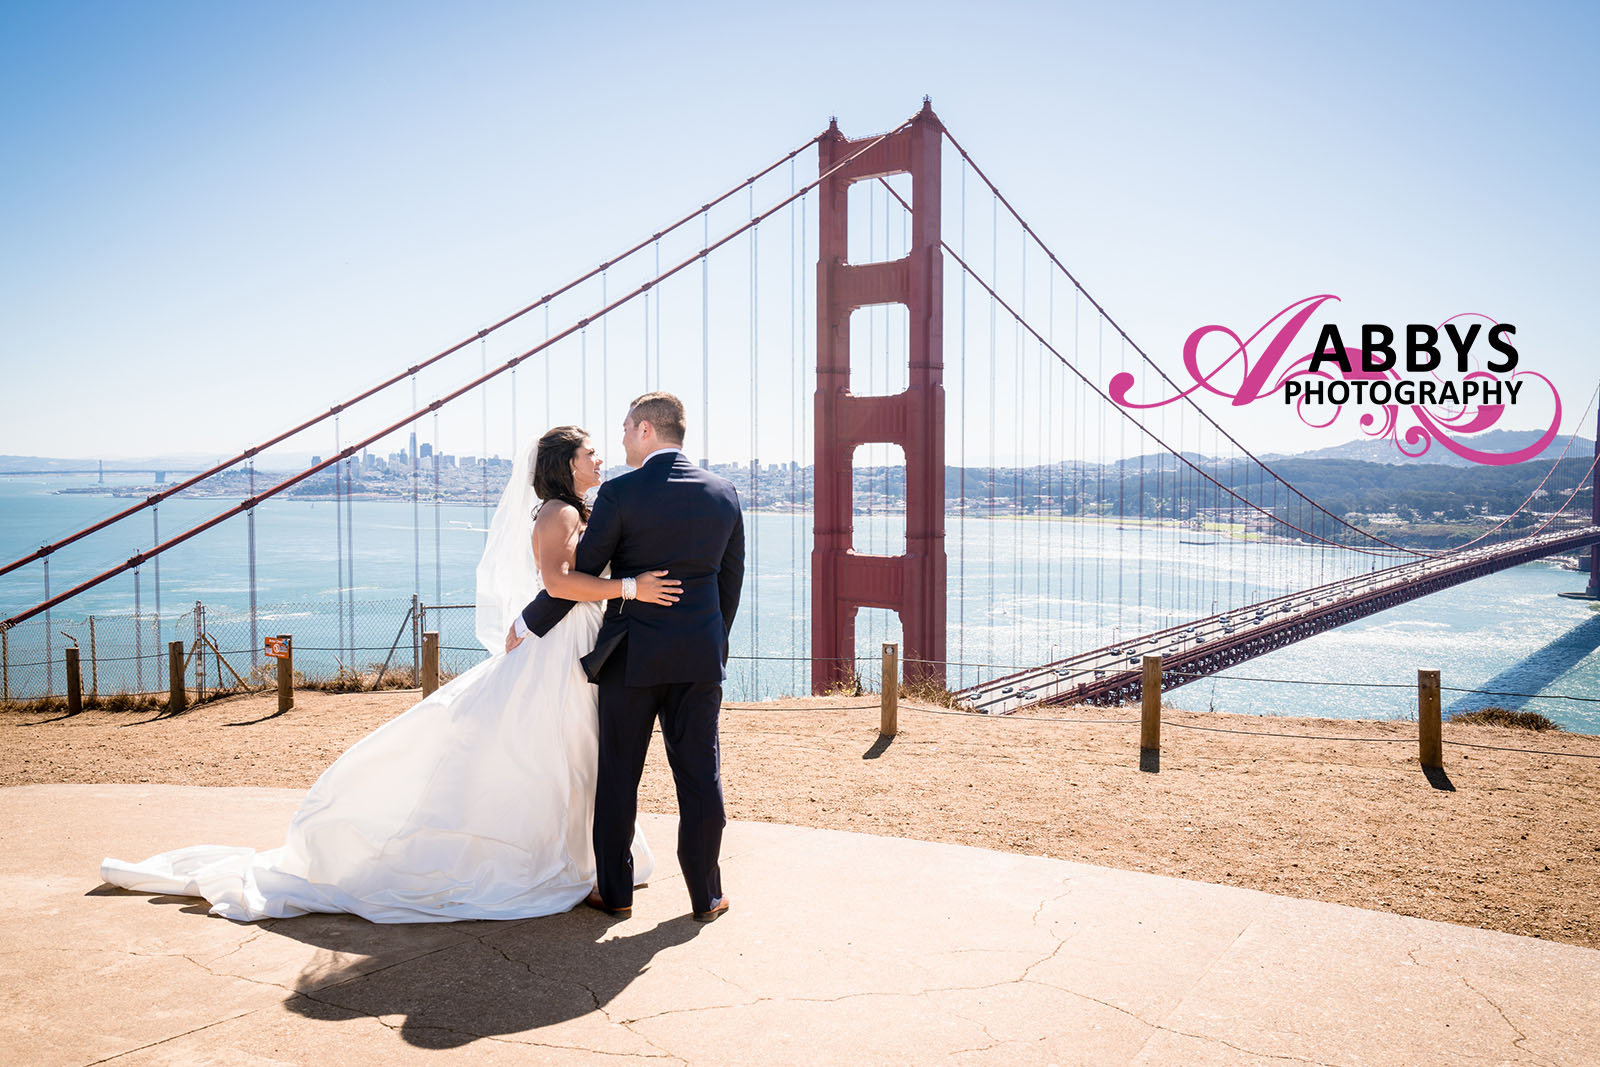 Wedding photography done right makes Bakersfield seem like San Francisco.